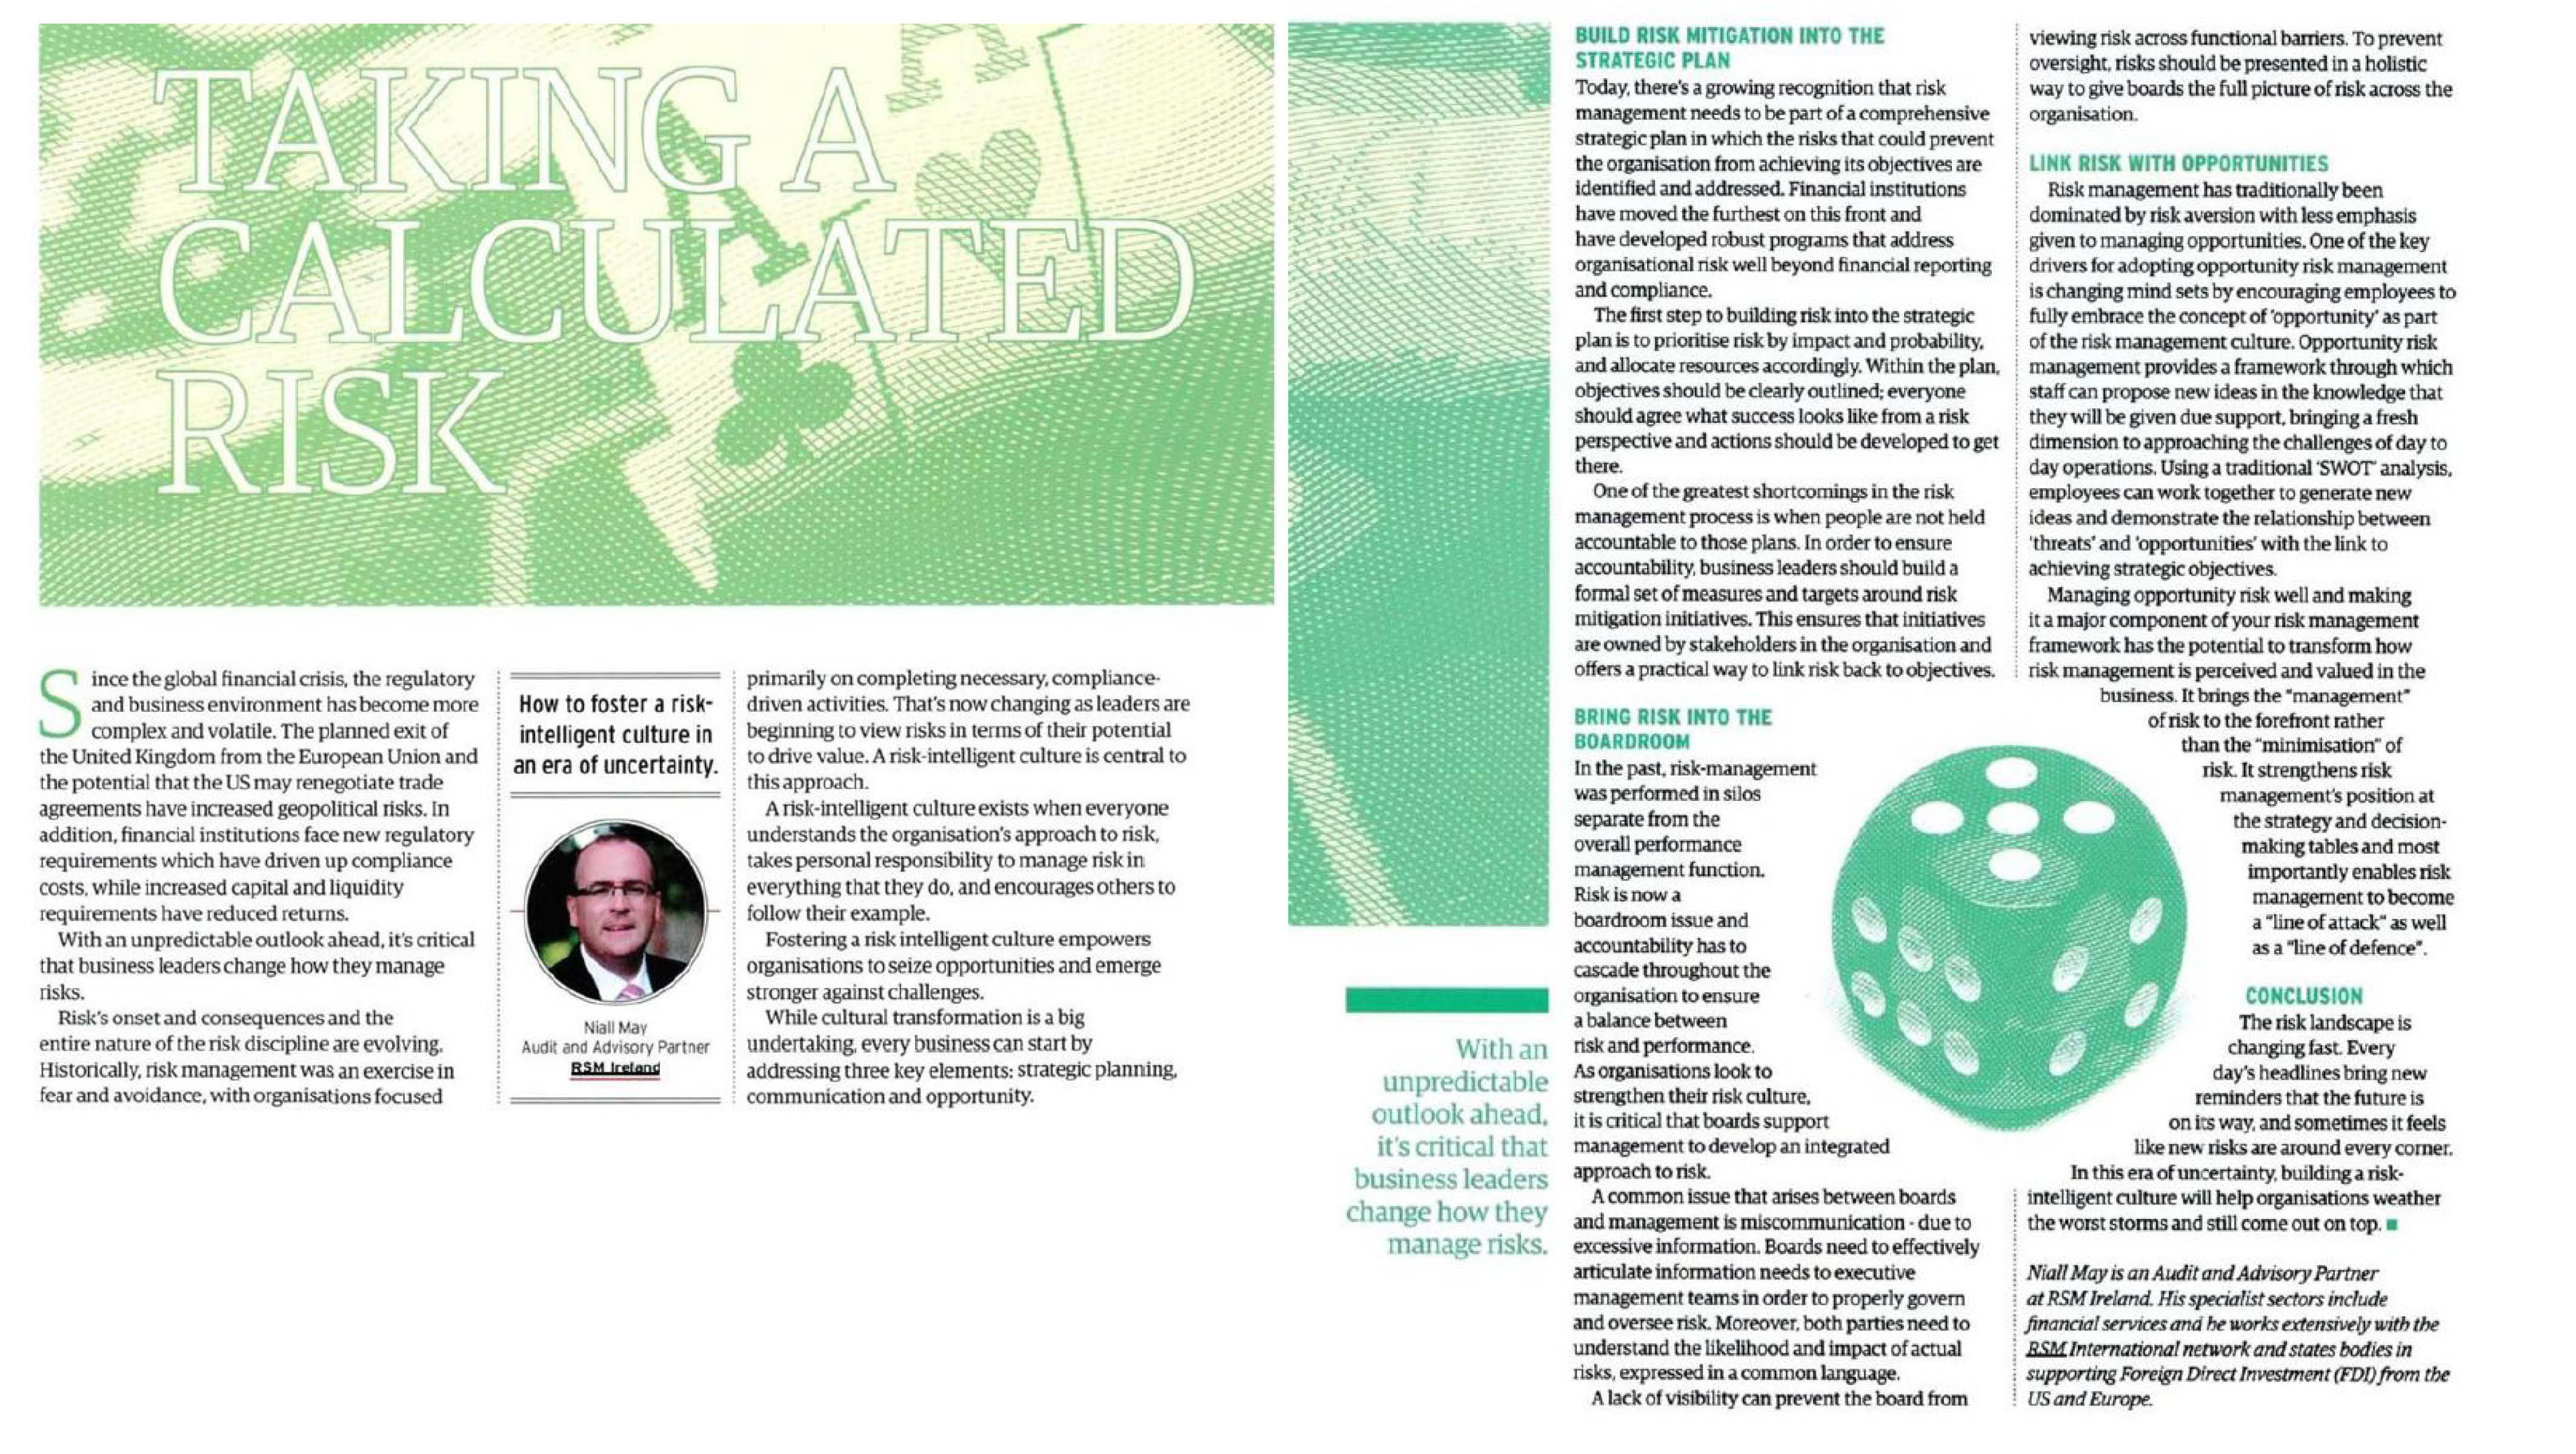 Taking a calculated risk - risk management article in Business & Finance Magazine